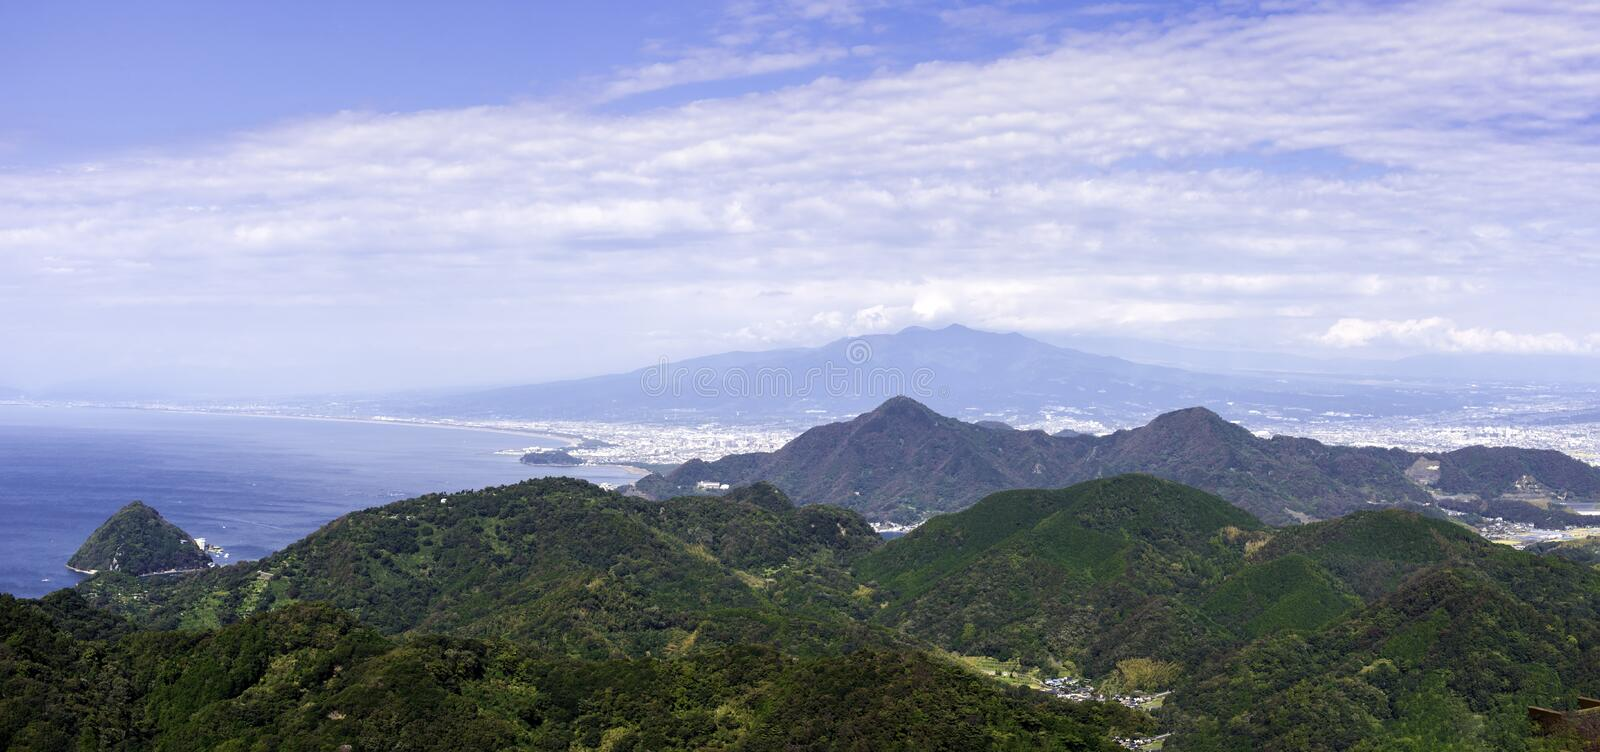 Lookout mountain and skyline and sea in Japan royalty free stock images